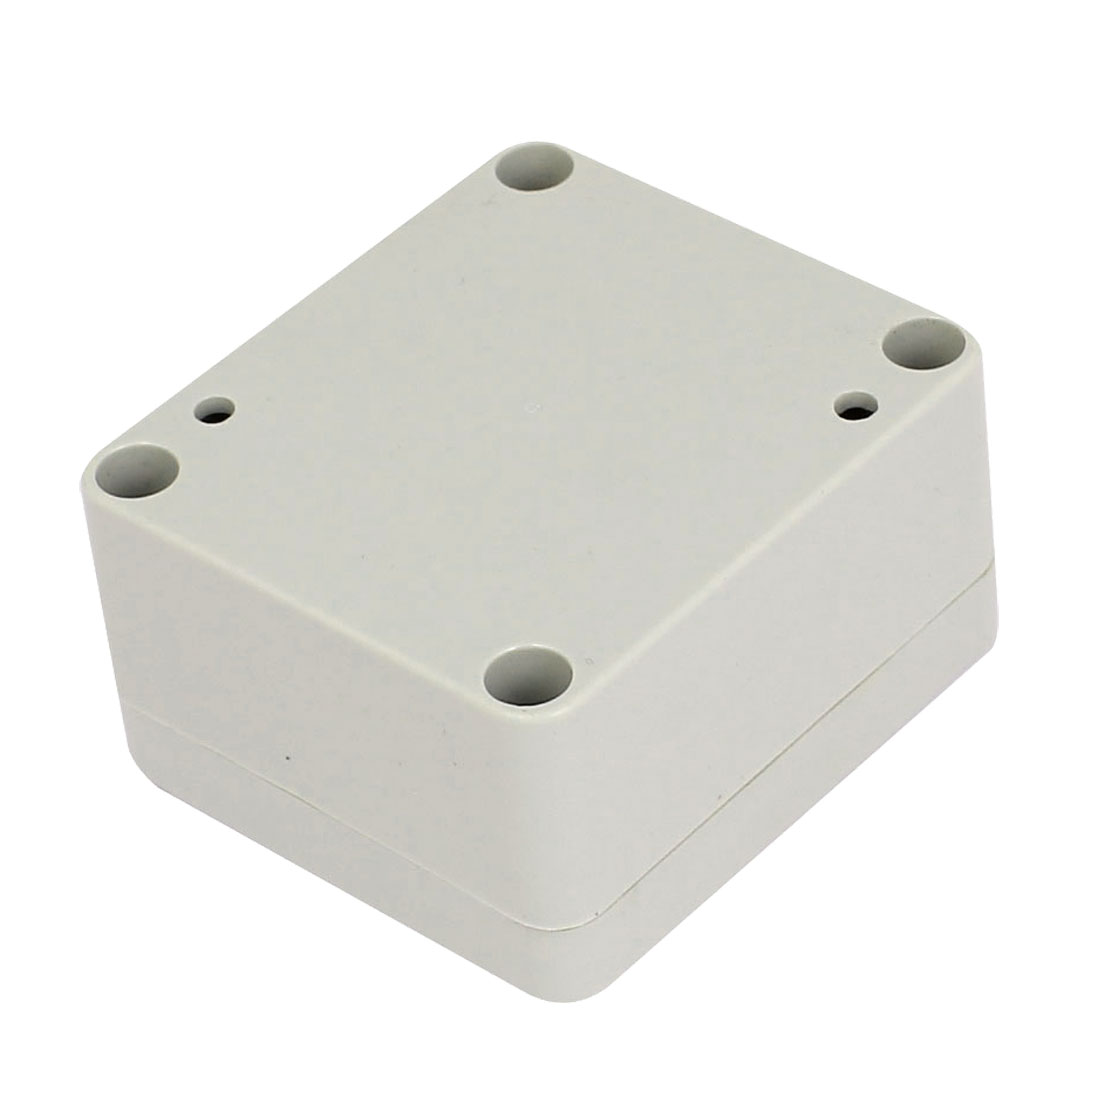 64mm x 57mm x 30mm Dustproof IP65 Sealed DIY Joint Electrical Junction Box